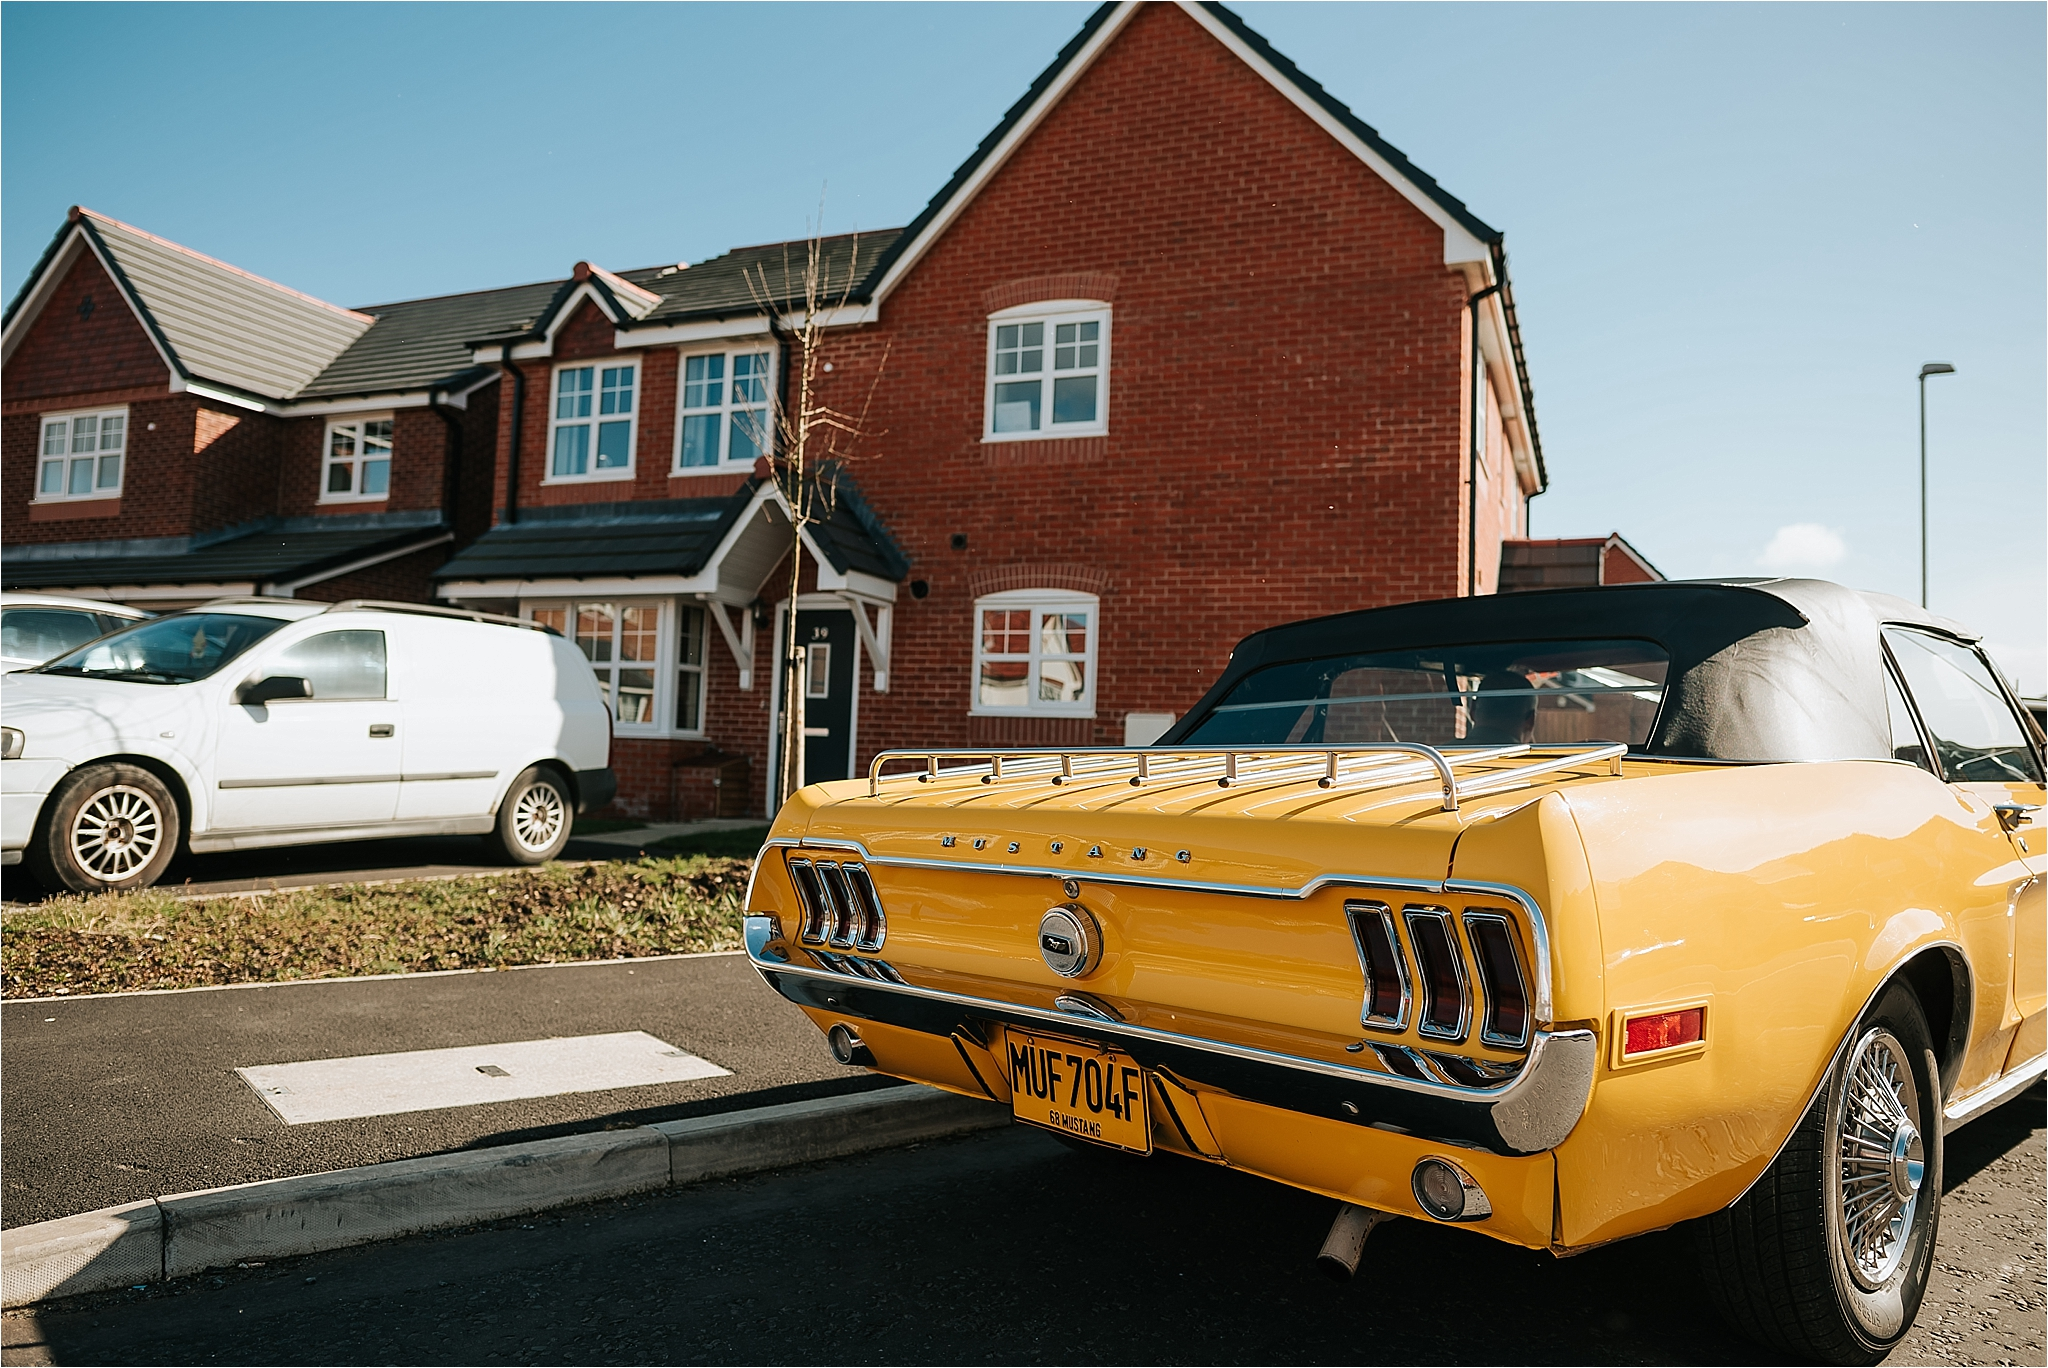 Yellow Ford Mustang by Ford mUSTANG WEDDINGS